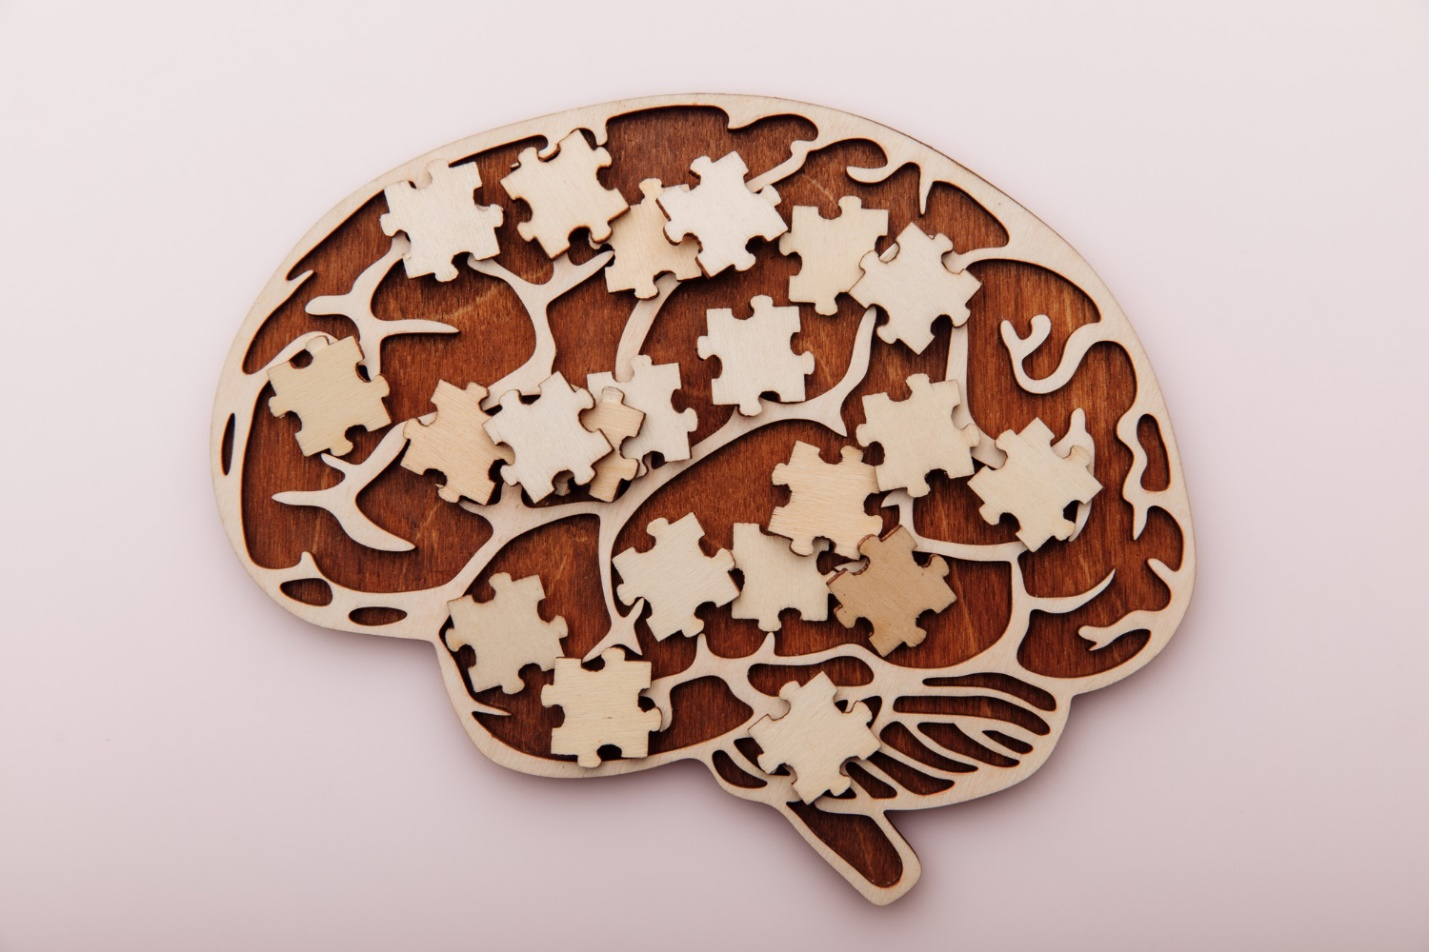 C:\Users\Dell\Downloads\wooden-brain-puzzles-mental-health-problems-with-memory.jpg